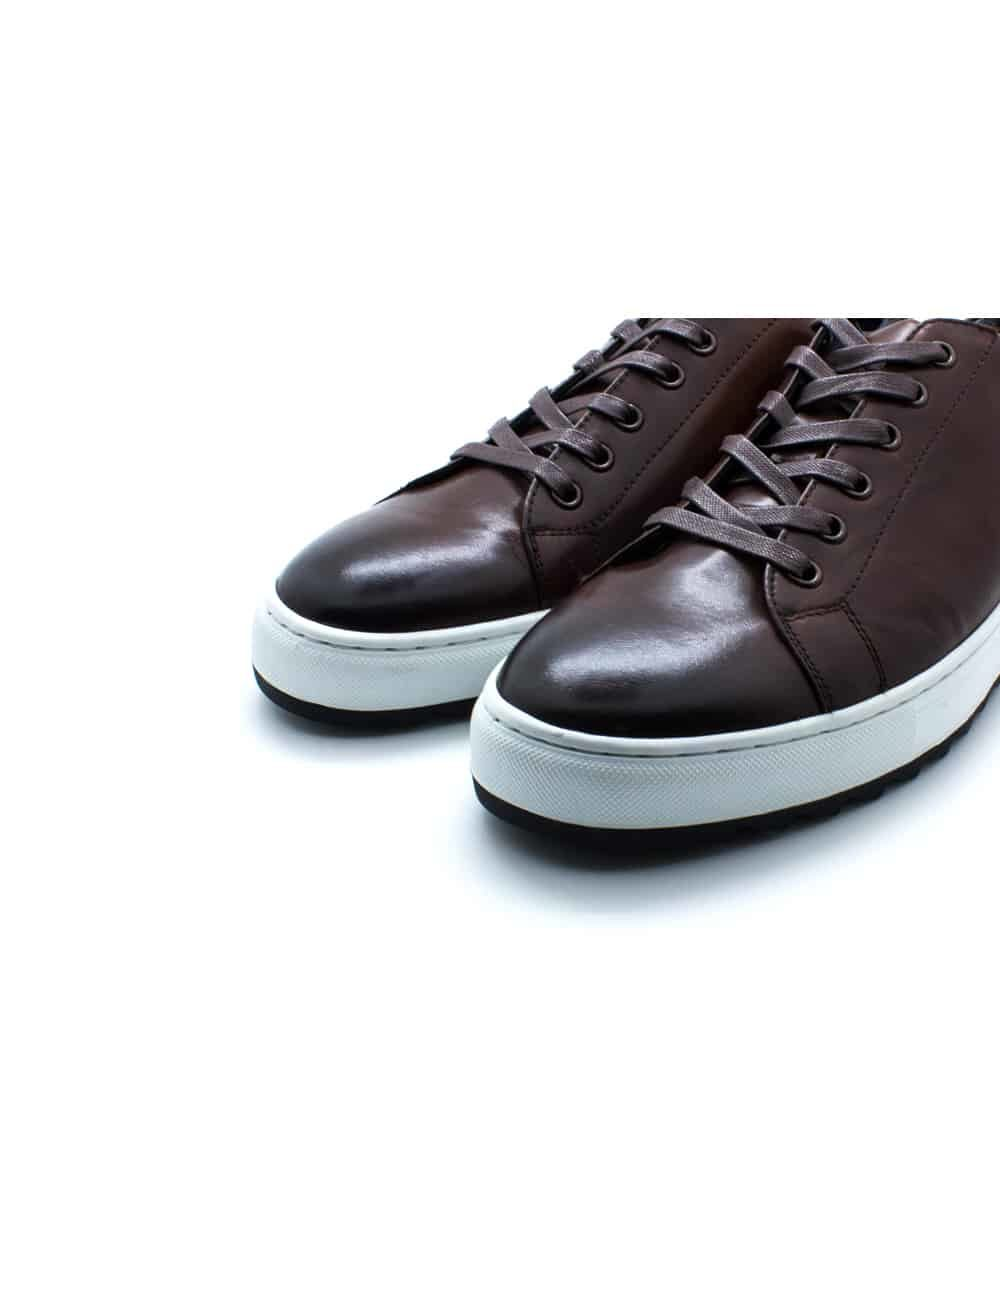 Dark Brown Leather Sneakers F20i21.3